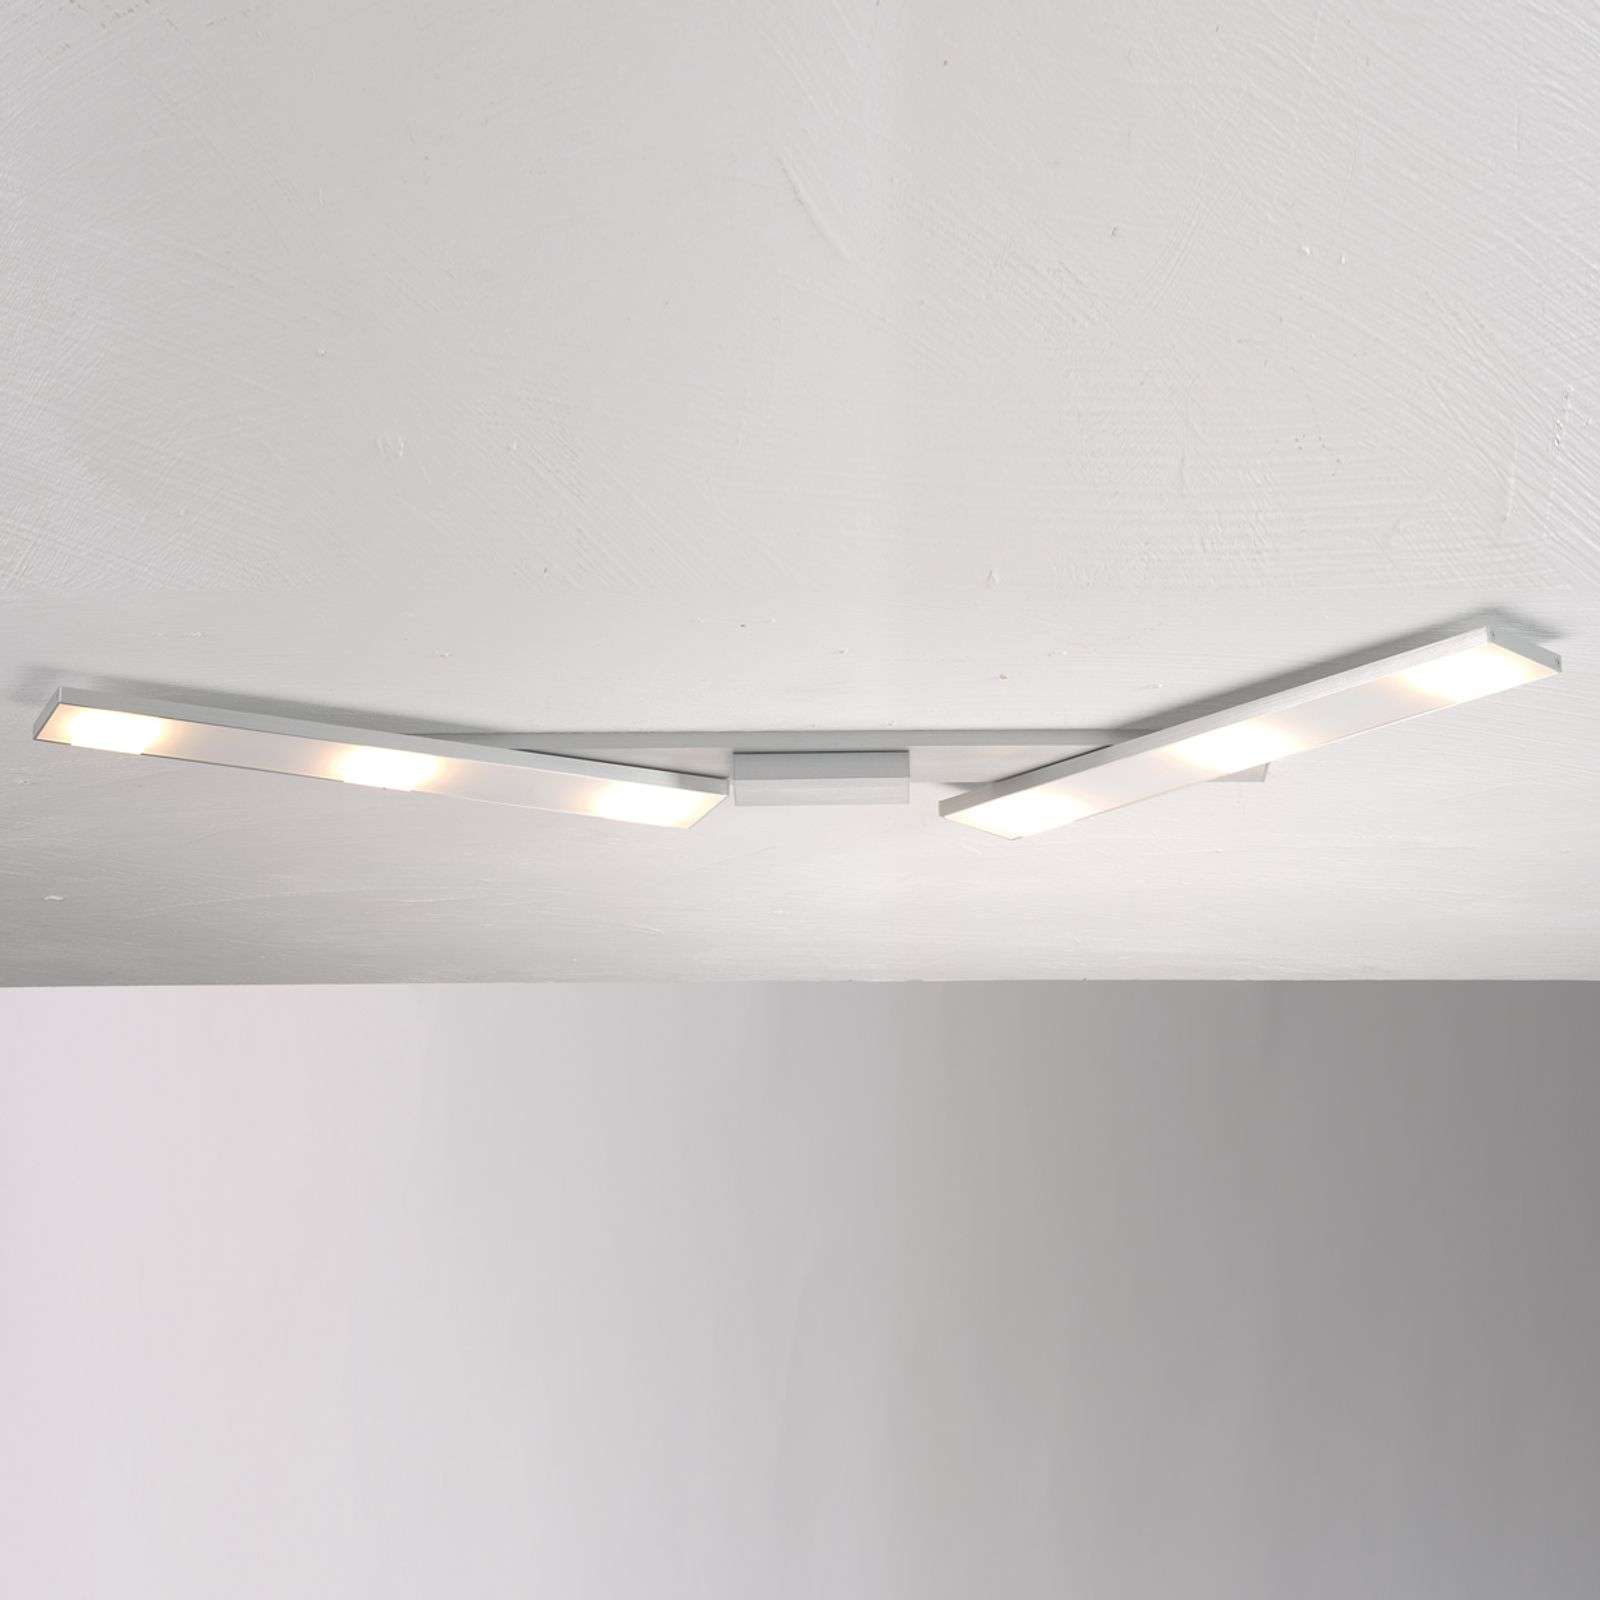 Verstelbare LED plafondlamp Slight, aluminium